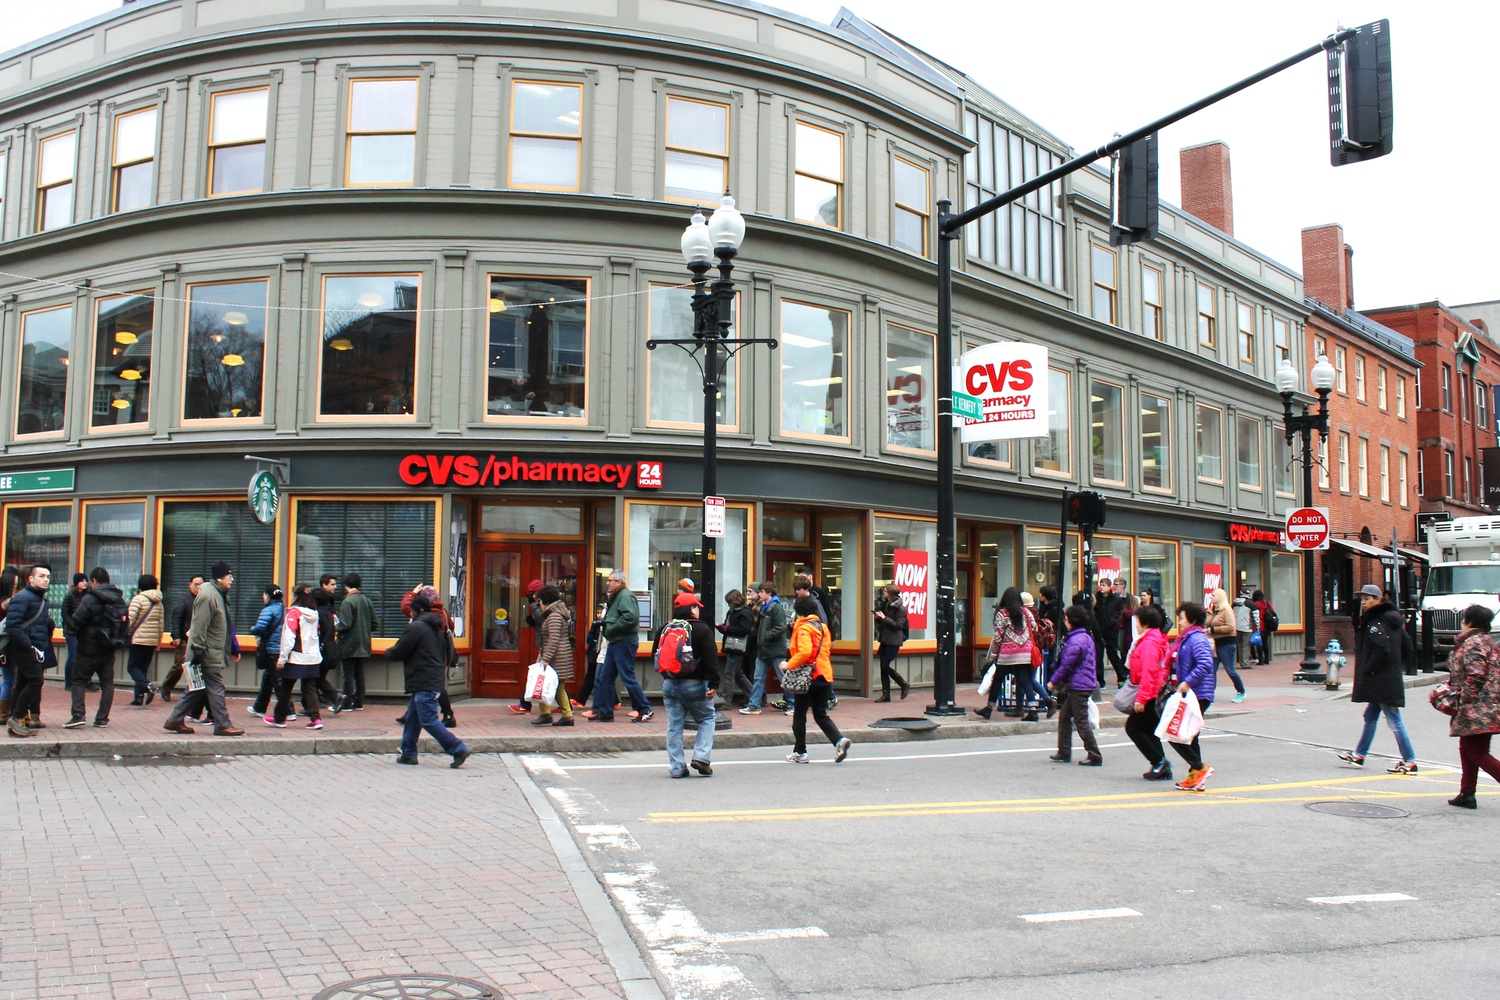 CVS is one of the locations where students will be able to use Crimson Cash during spring break.